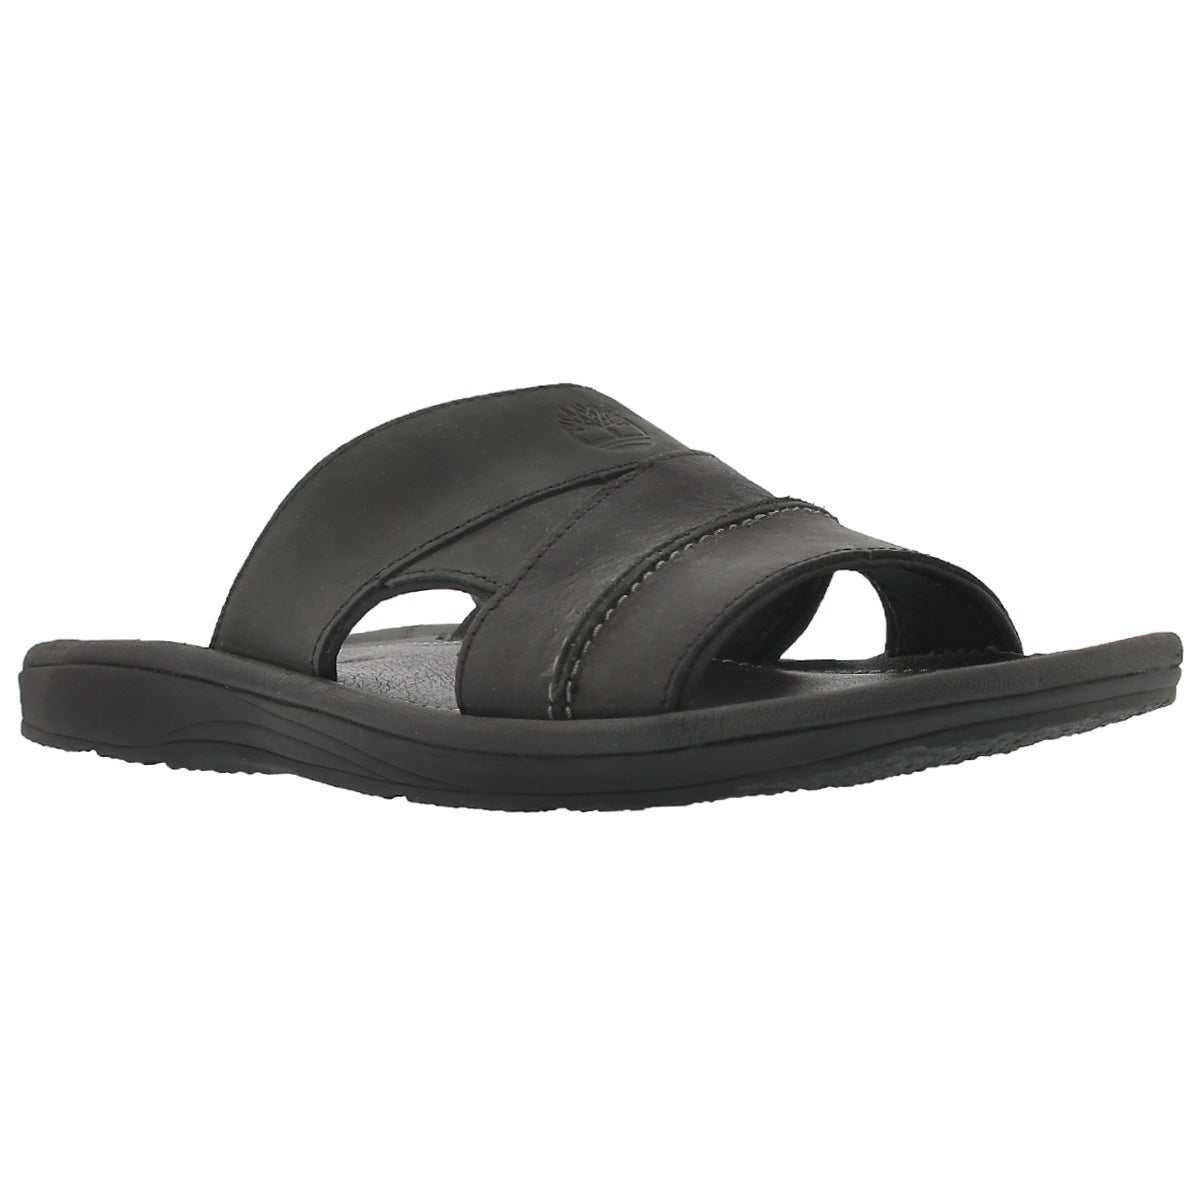 Men's EARTHKEEPERS black oiled slide sandals